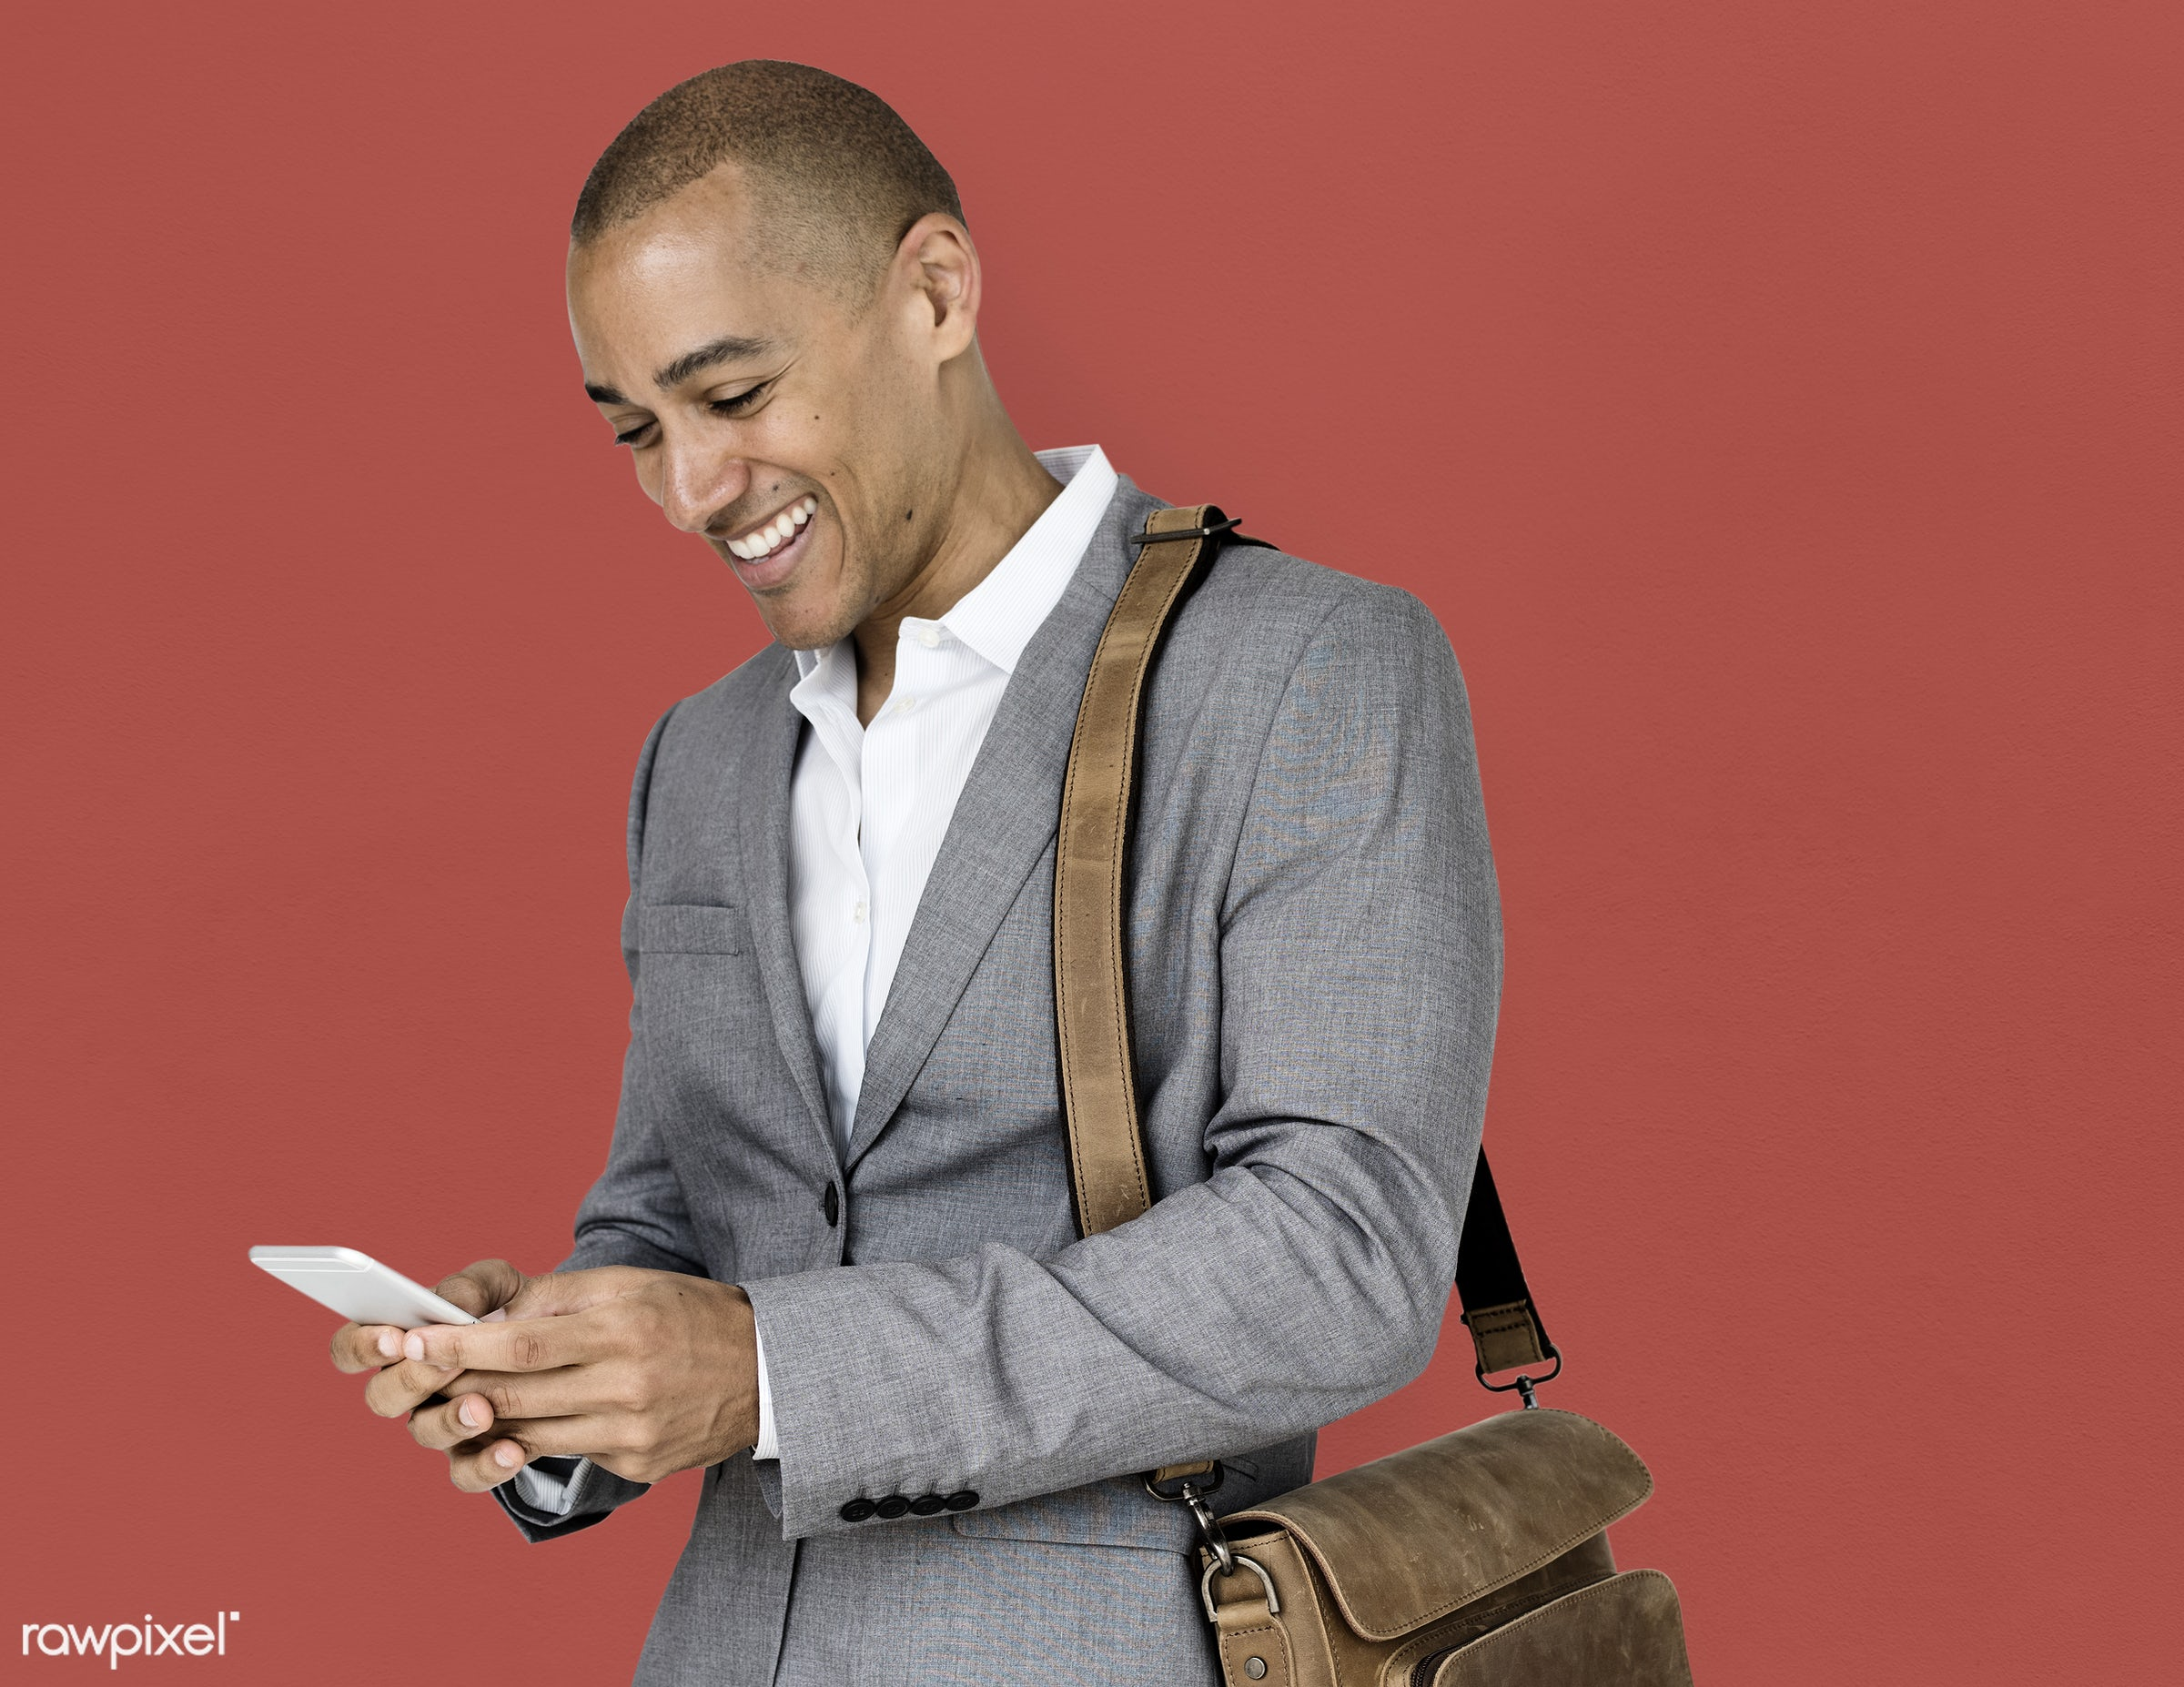 expression, studio, person, phone, messenger bag, people, business, happy, suits, smile, cheerful, smiling, man, black,...